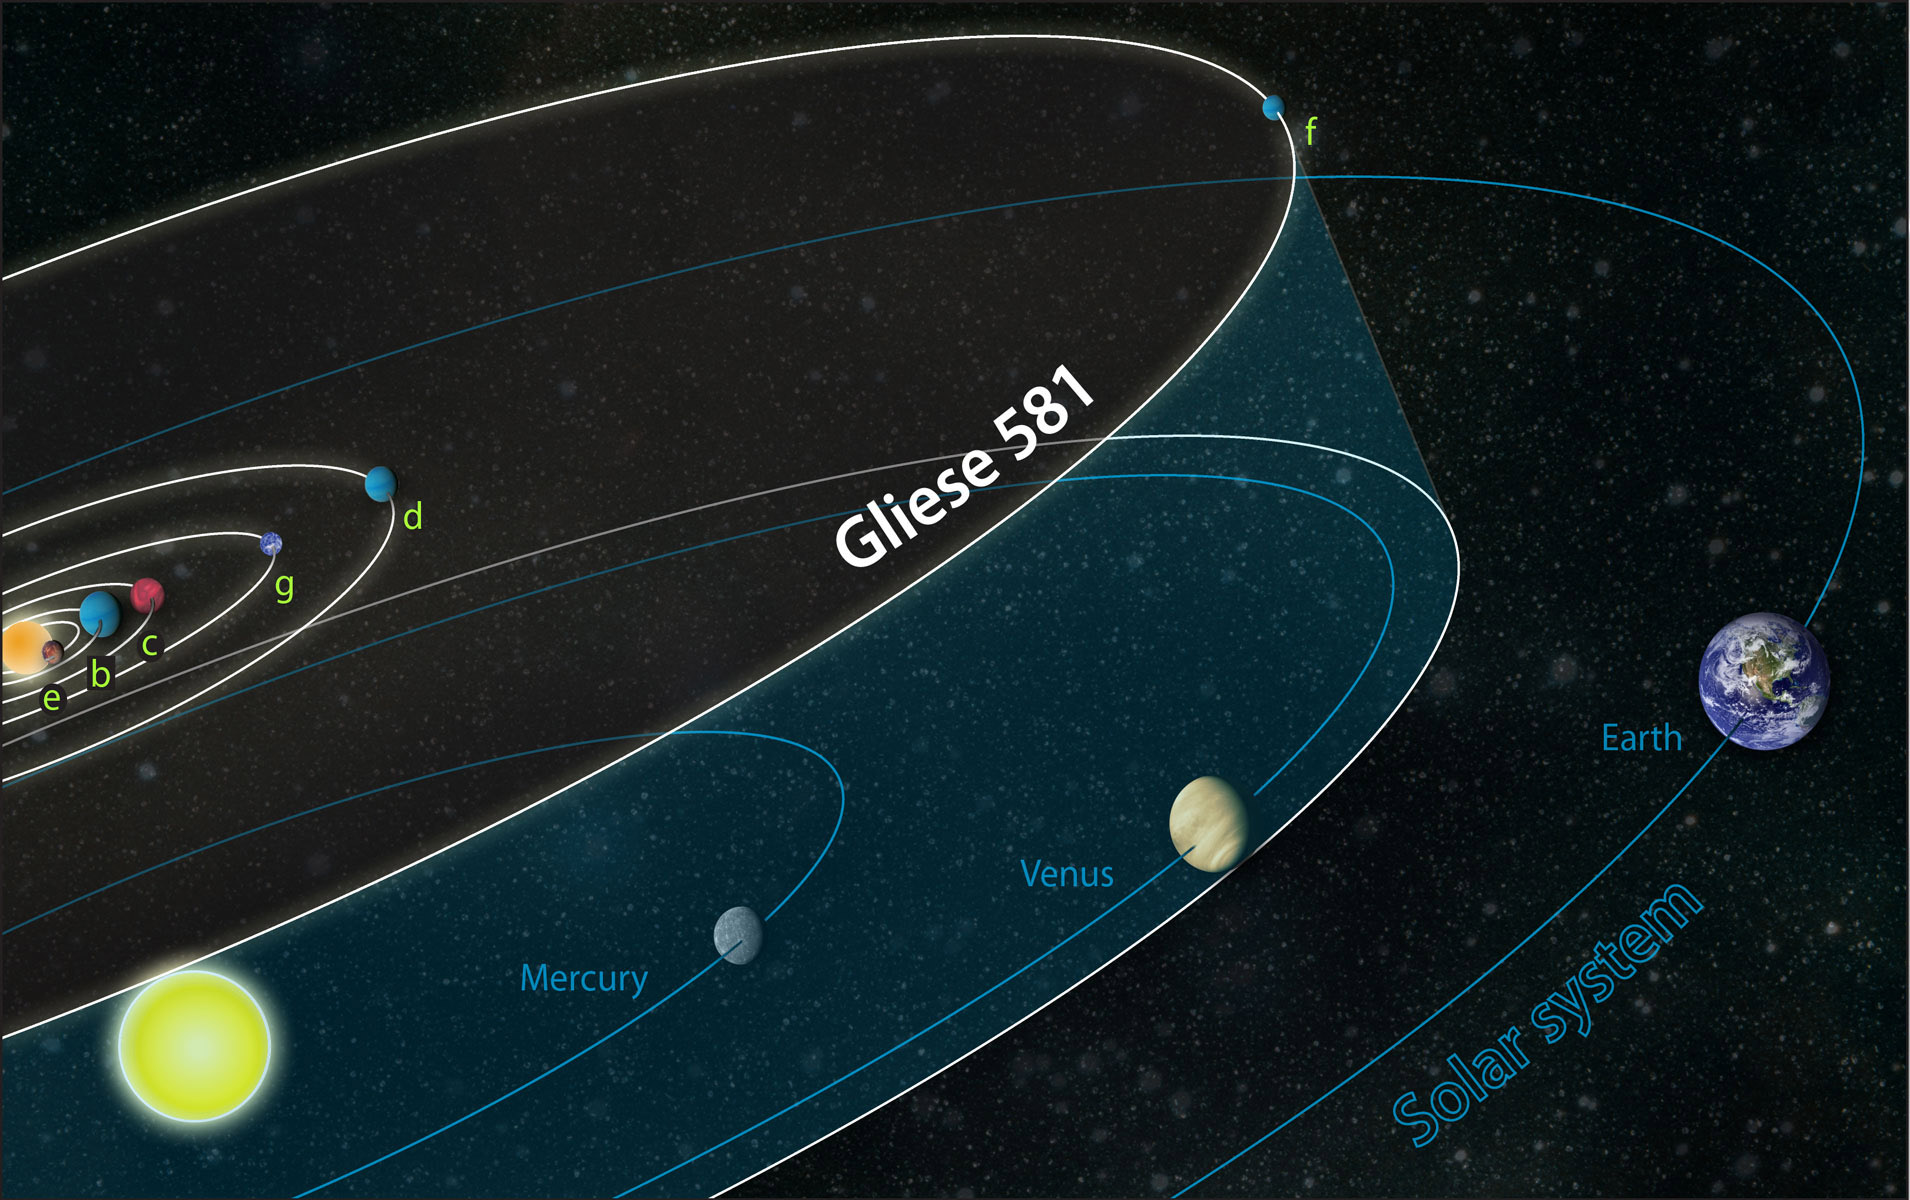 Gliese 581, and the Habitable Planet | tLBL